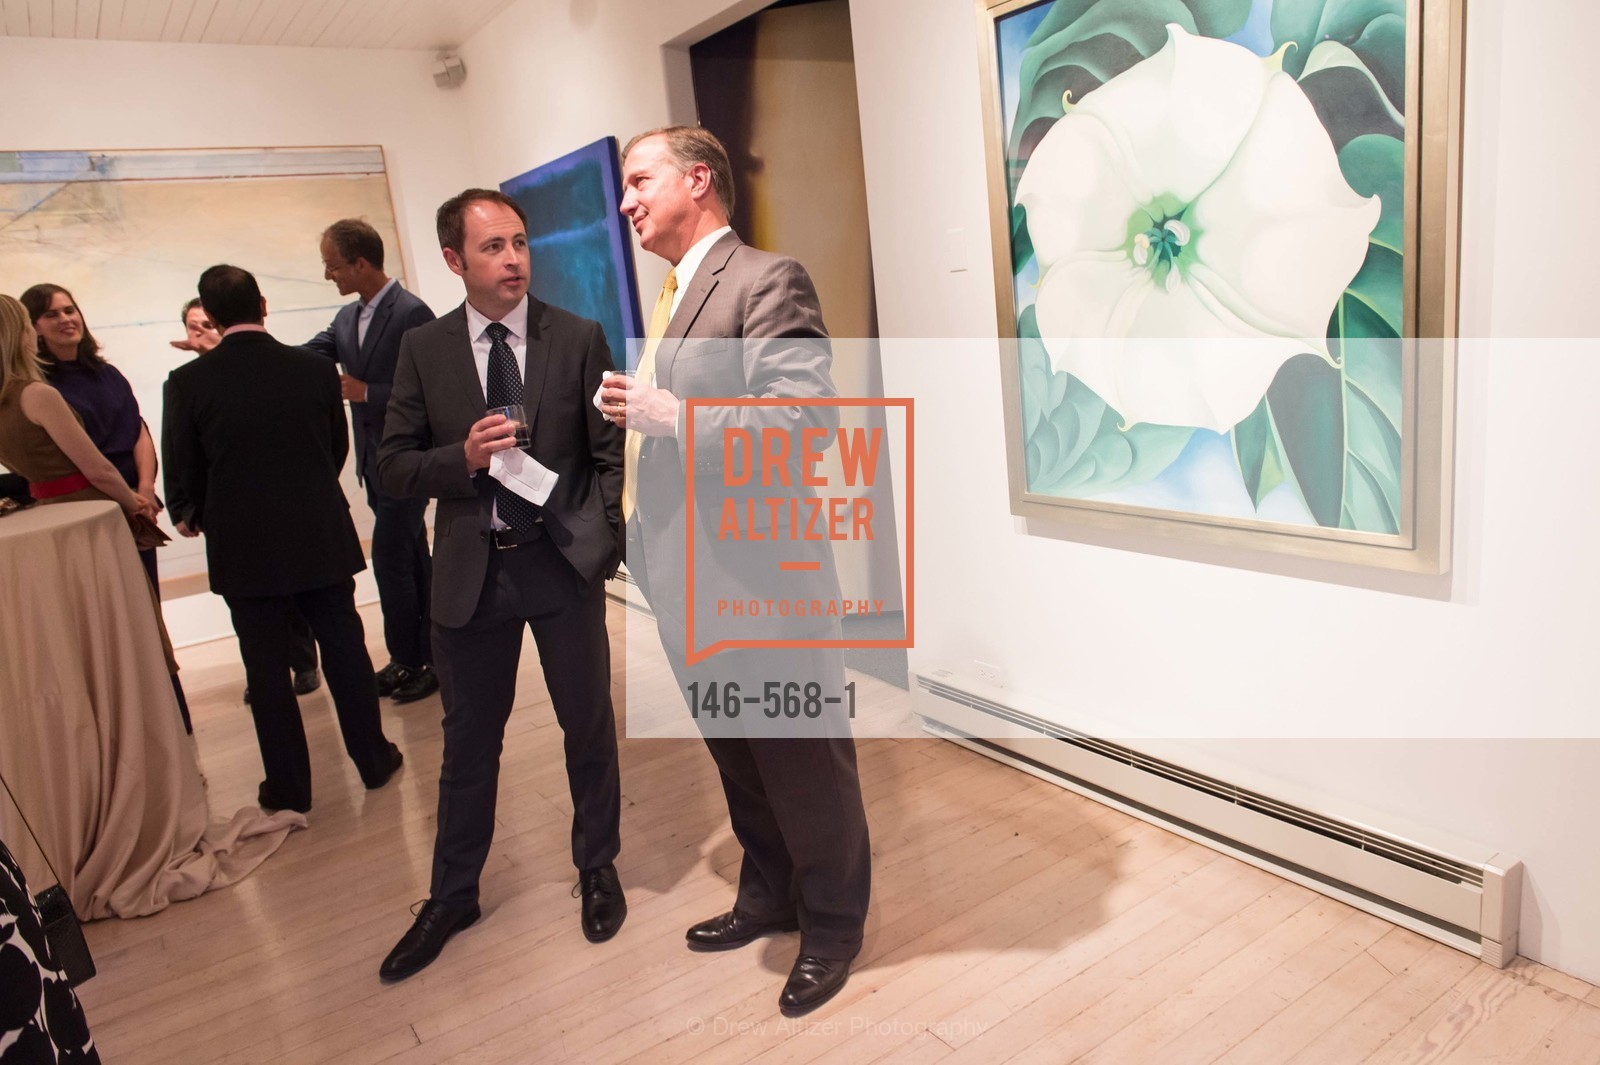 Cody Hartley, Robert Kret, SOTHEBY'S  Hosts a Private Viewing of Highlights from the Collection of MRS. PAUL MELLON, US, September 17th, 2014,Drew Altizer, Drew Altizer Photography, full-service agency, private events, San Francisco photographer, photographer california